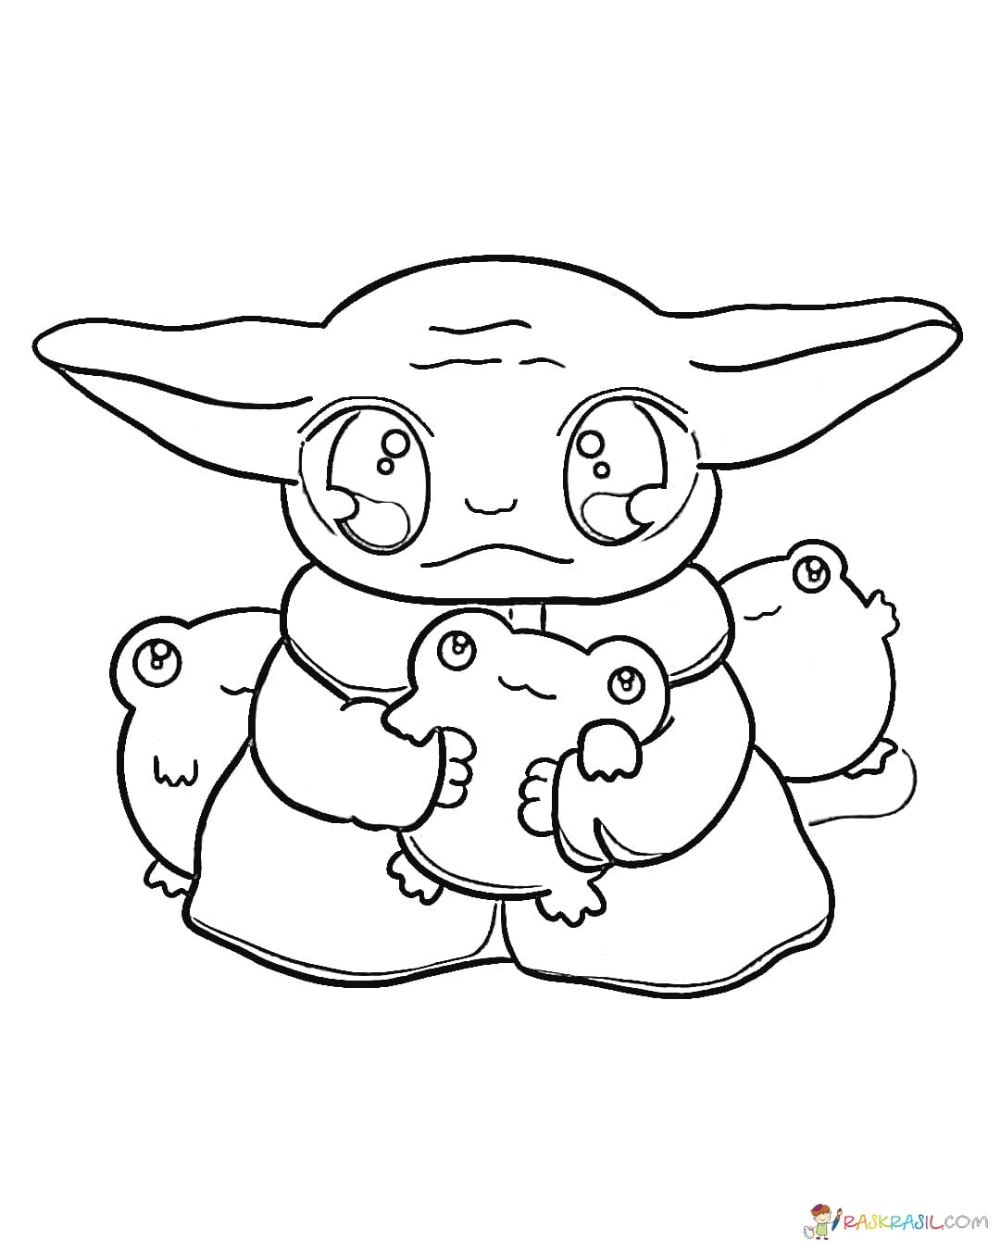 Coloring Pages Baby Yoda The Mandalorian And Baby Yoda Free Coloring Pages Unique Coloring Pages Alien Character